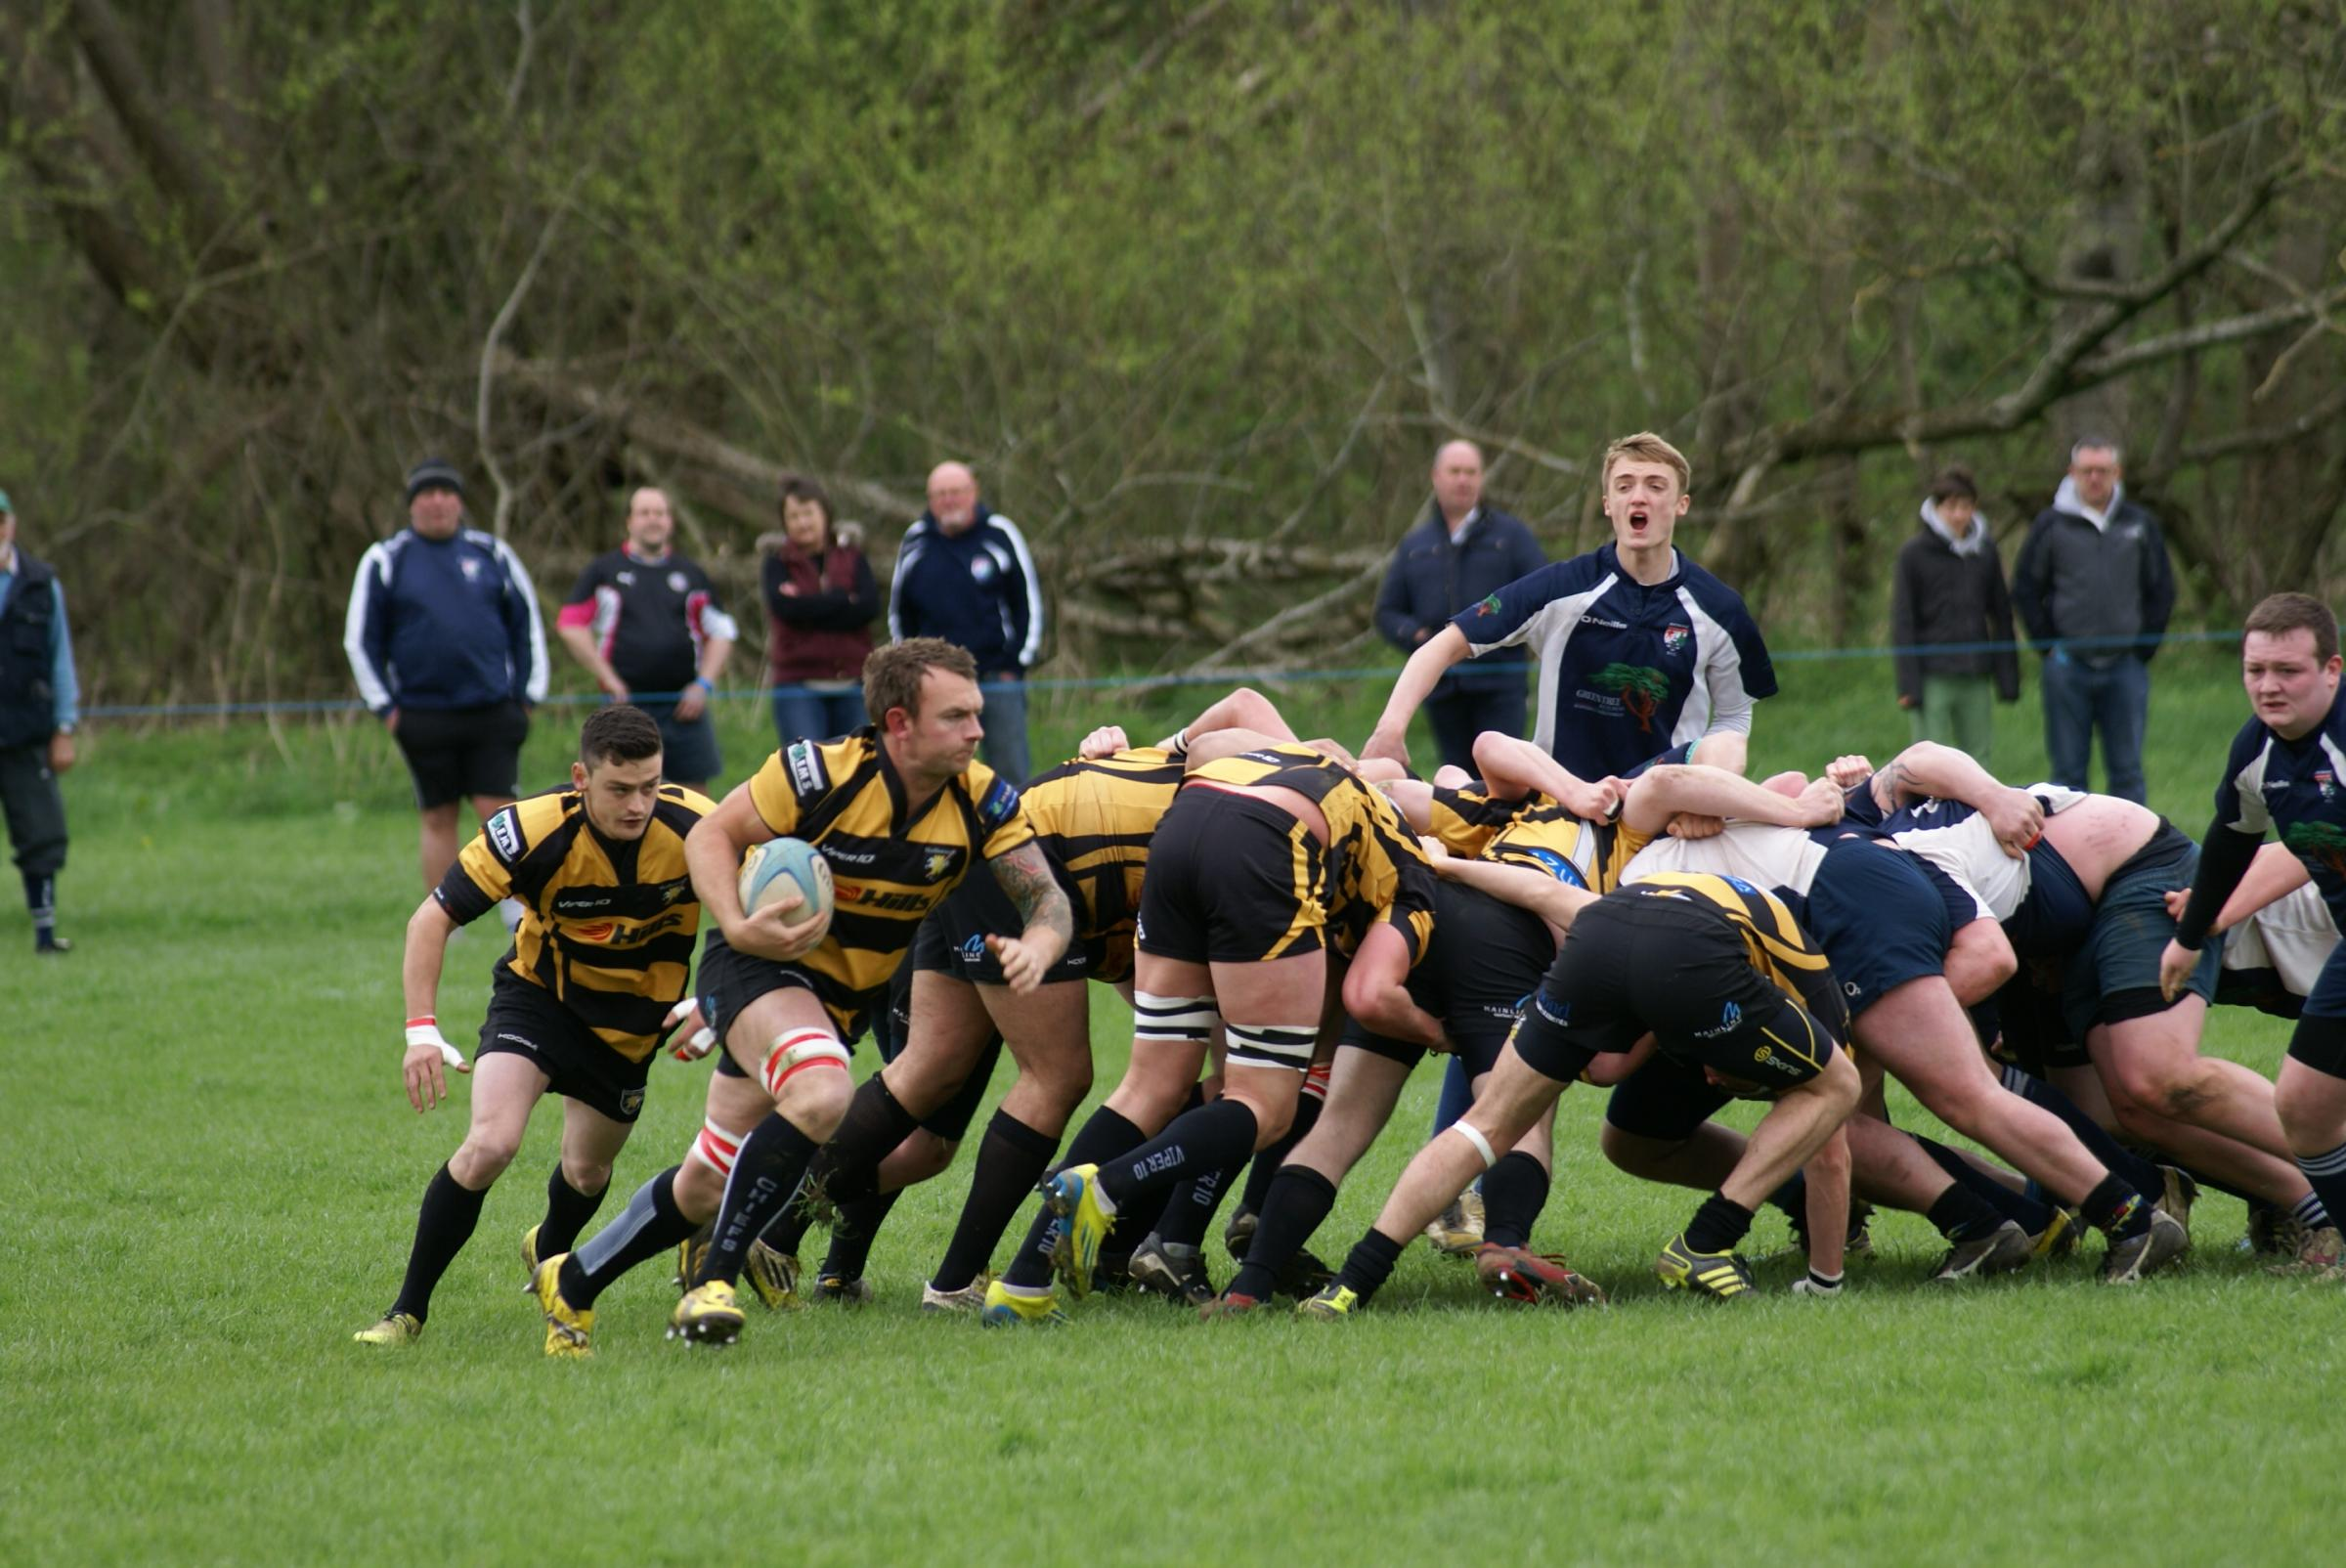 Jonny Mantle starts an attack for Marlborough